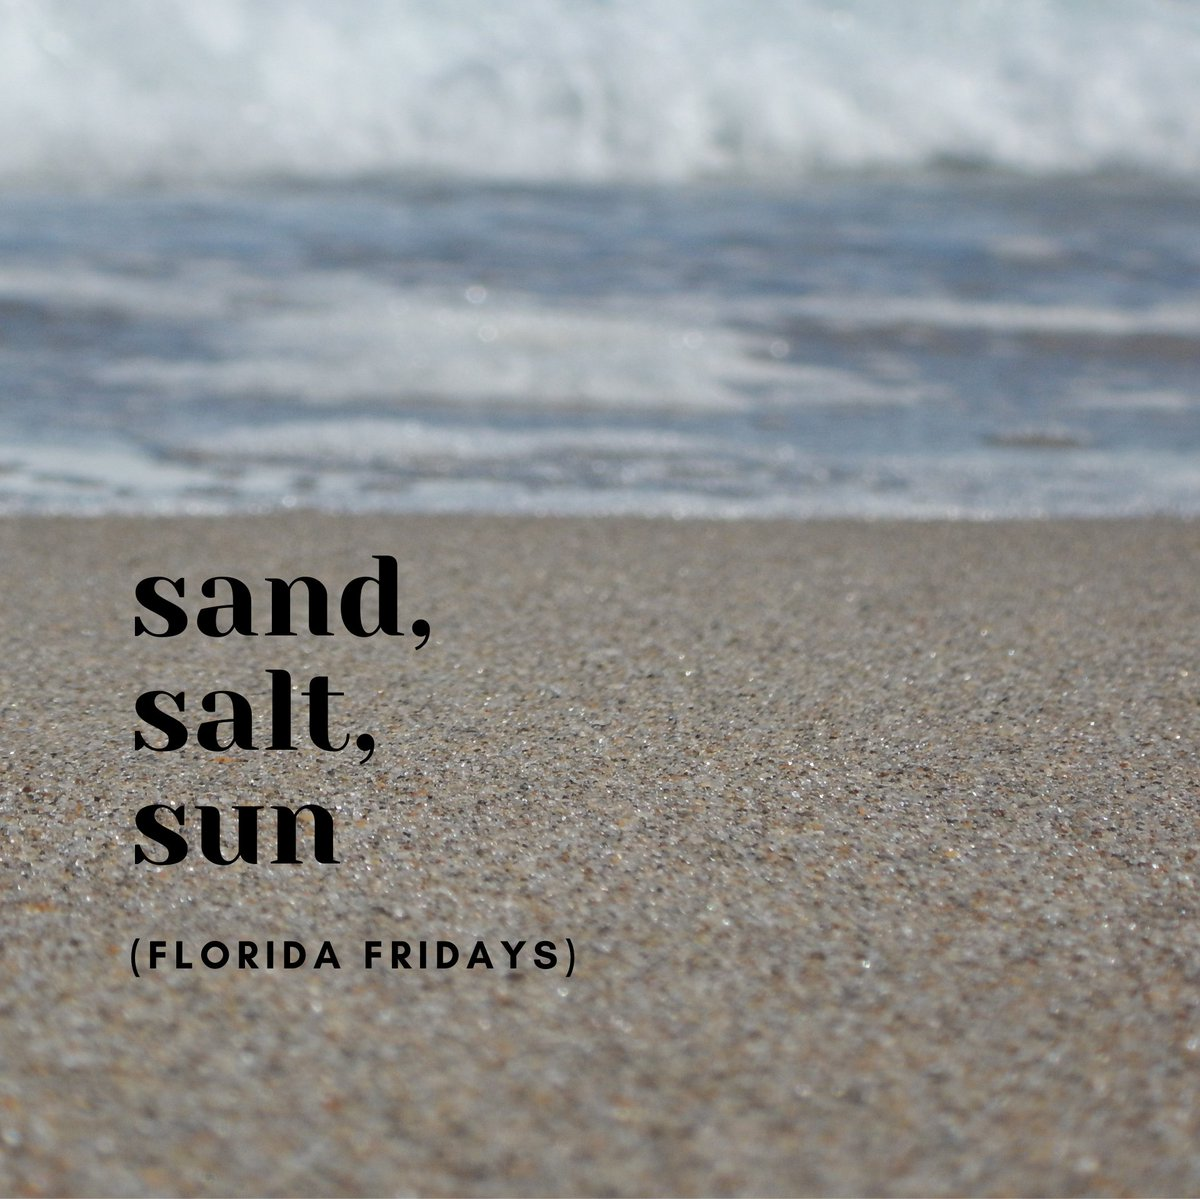 Just another Friday in vacationland!  #Friday #weekendvibes #beach #sand #salt #sun #touristlifestyle